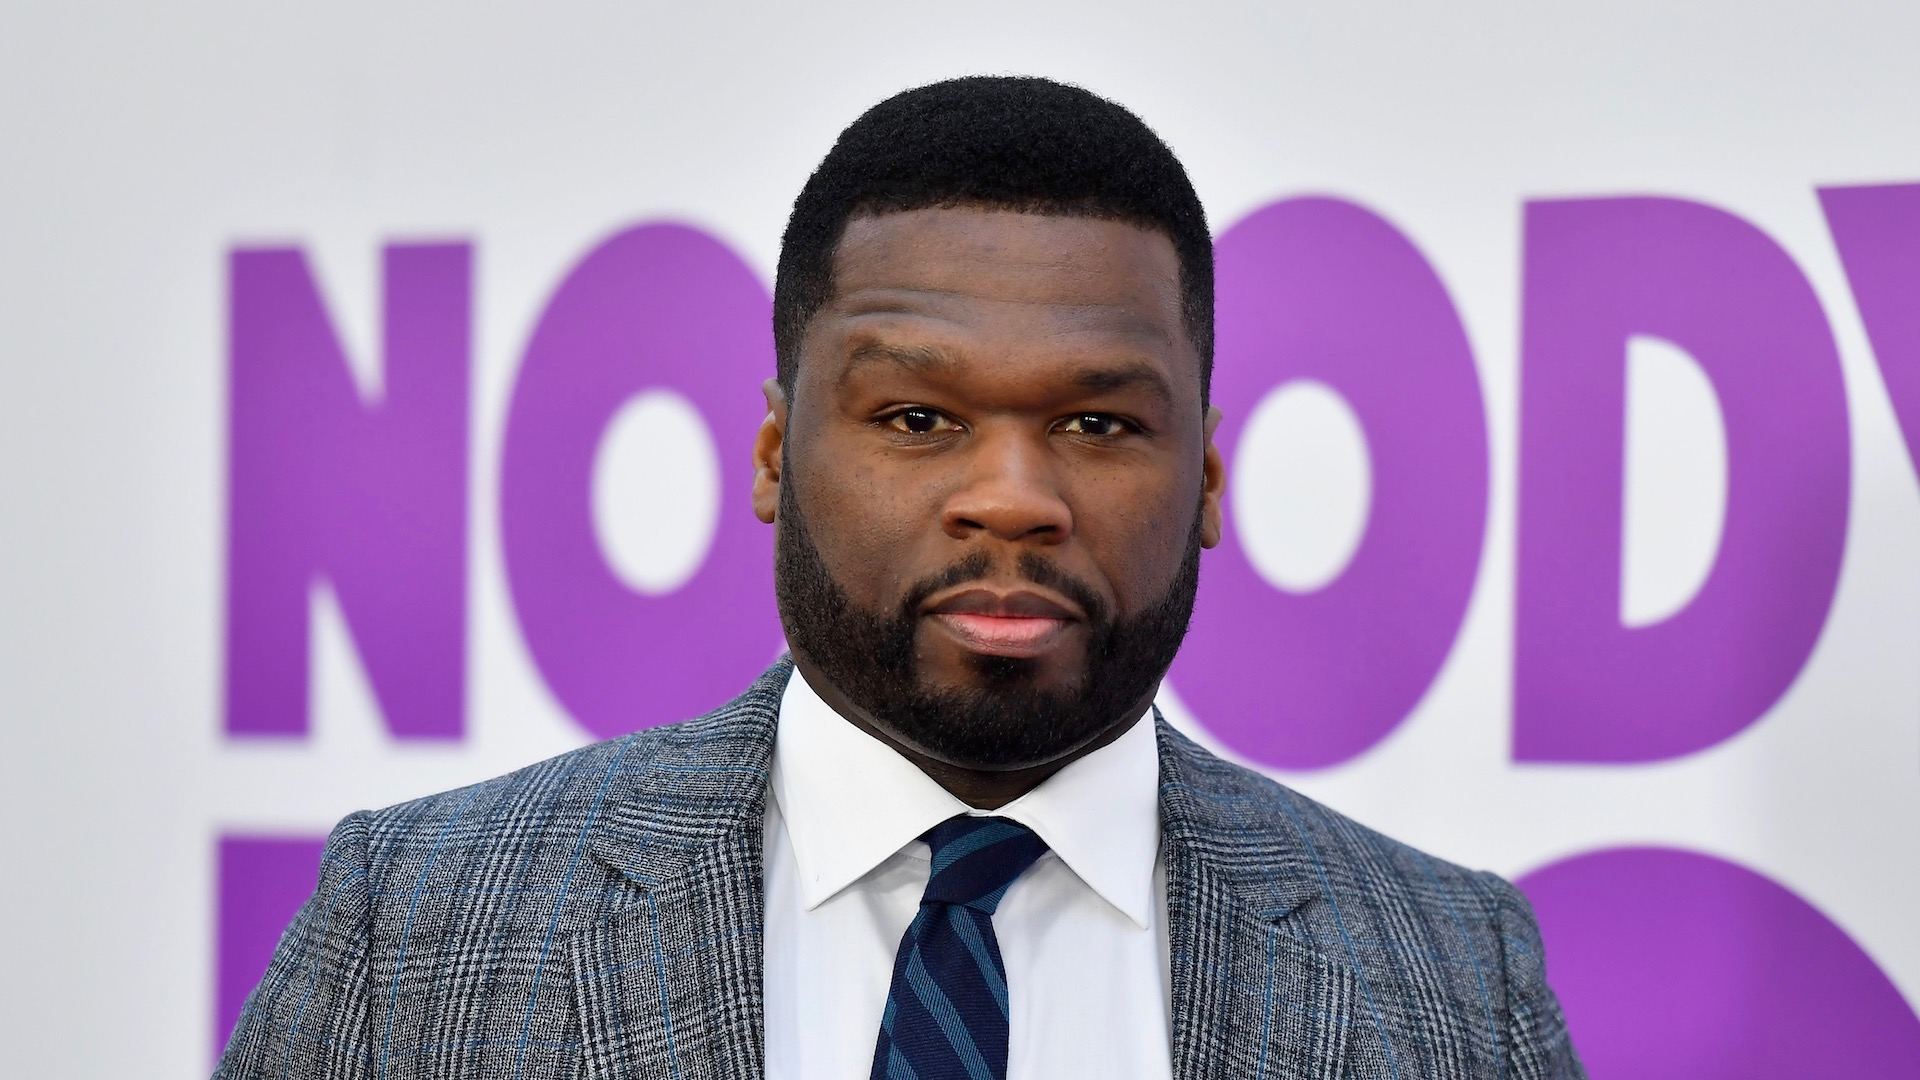 Artist Behind Viral 50 Cent Murals Claims He's Been Assaulted Over His Work